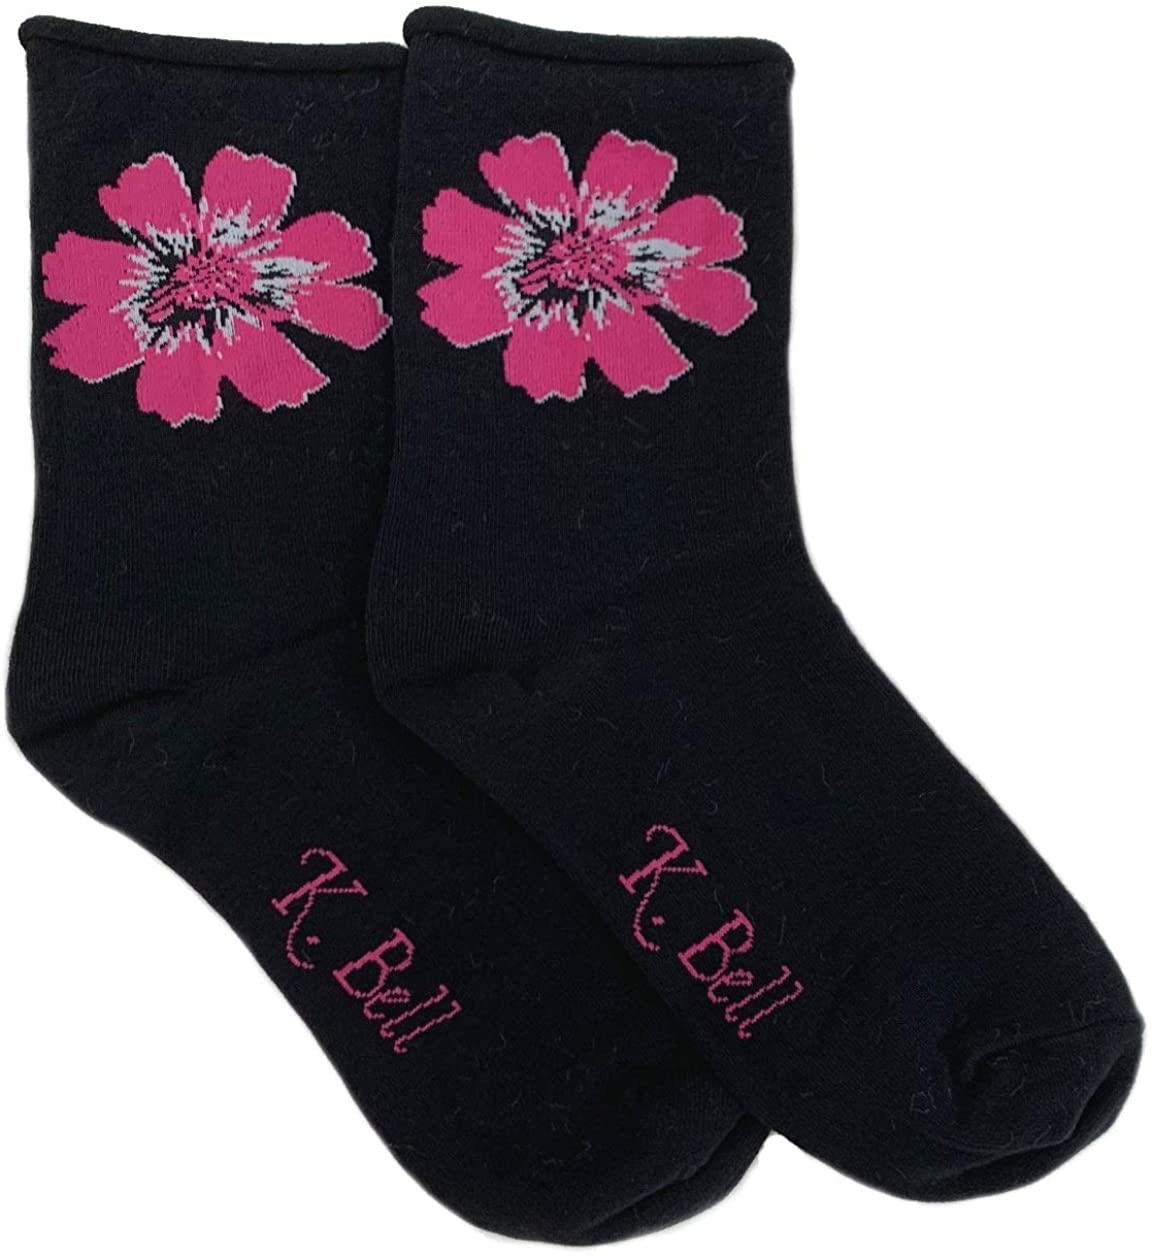 Womens Non-Binding Relaxed Roll Top Crew Socks, 2 Pair, Black with Pink Flower